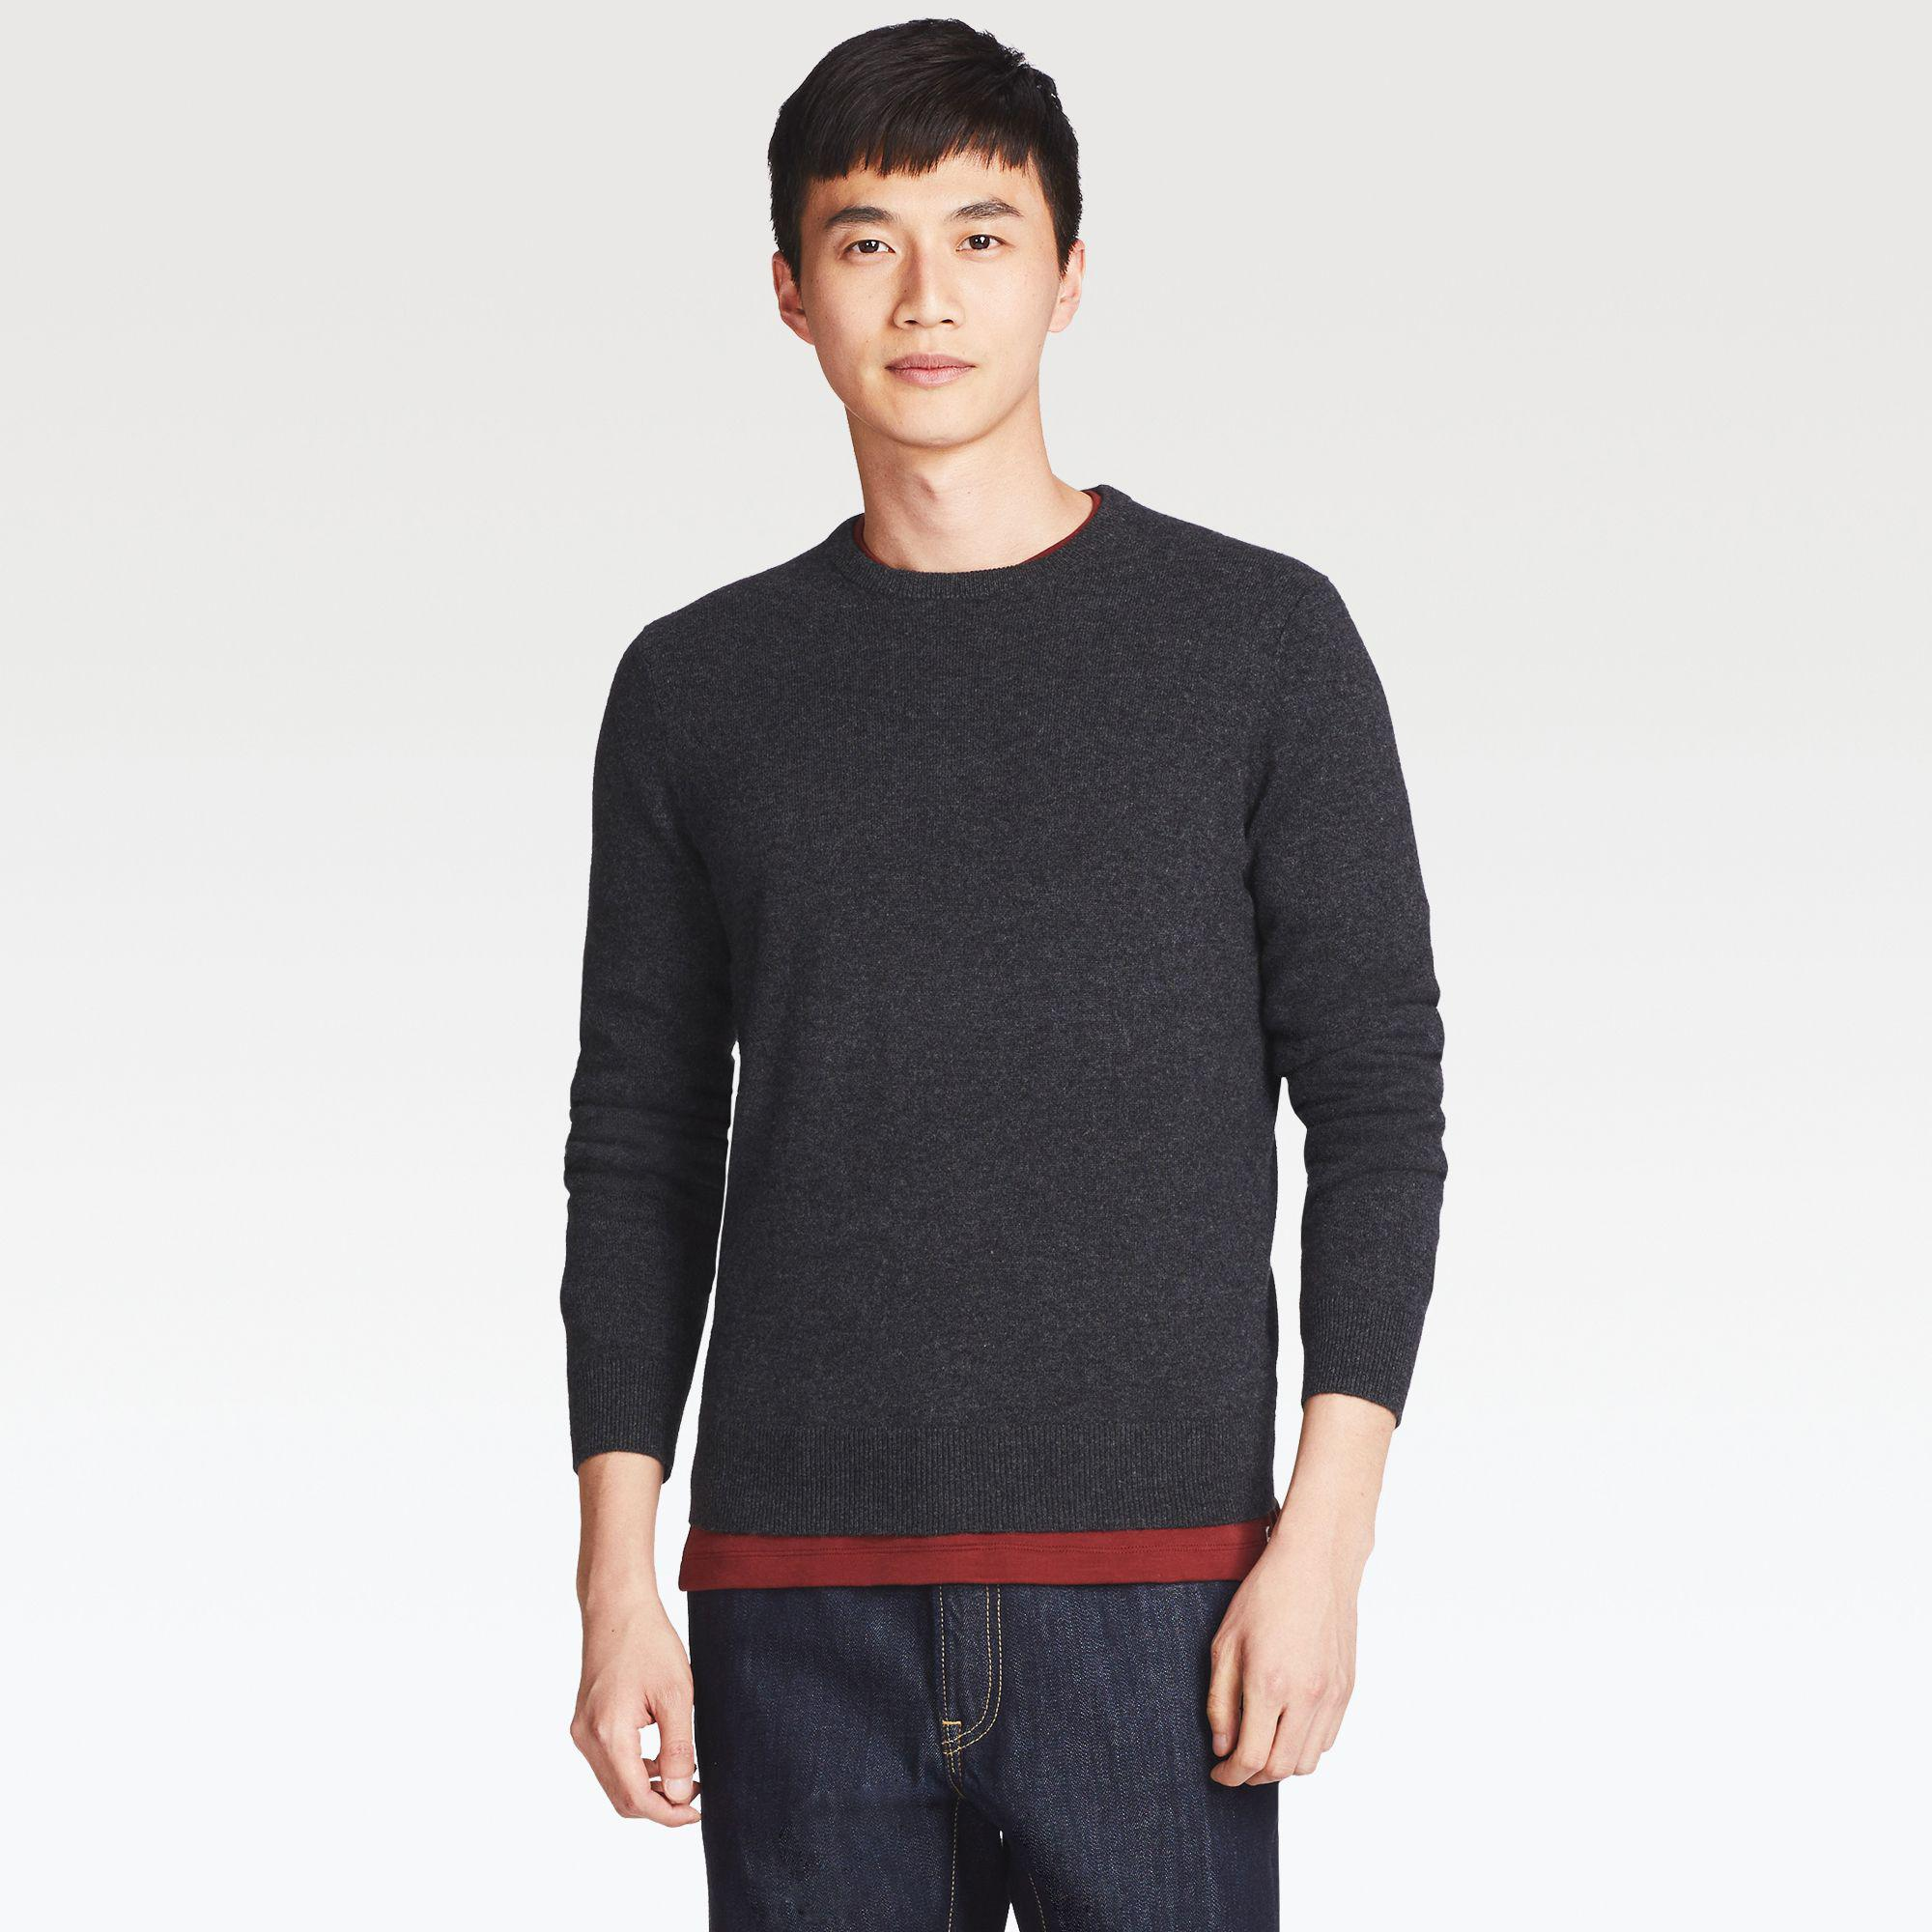 Uniqlo Cashmere Crew Neck Long Sleeve Sweater In Gray For Men Lyst